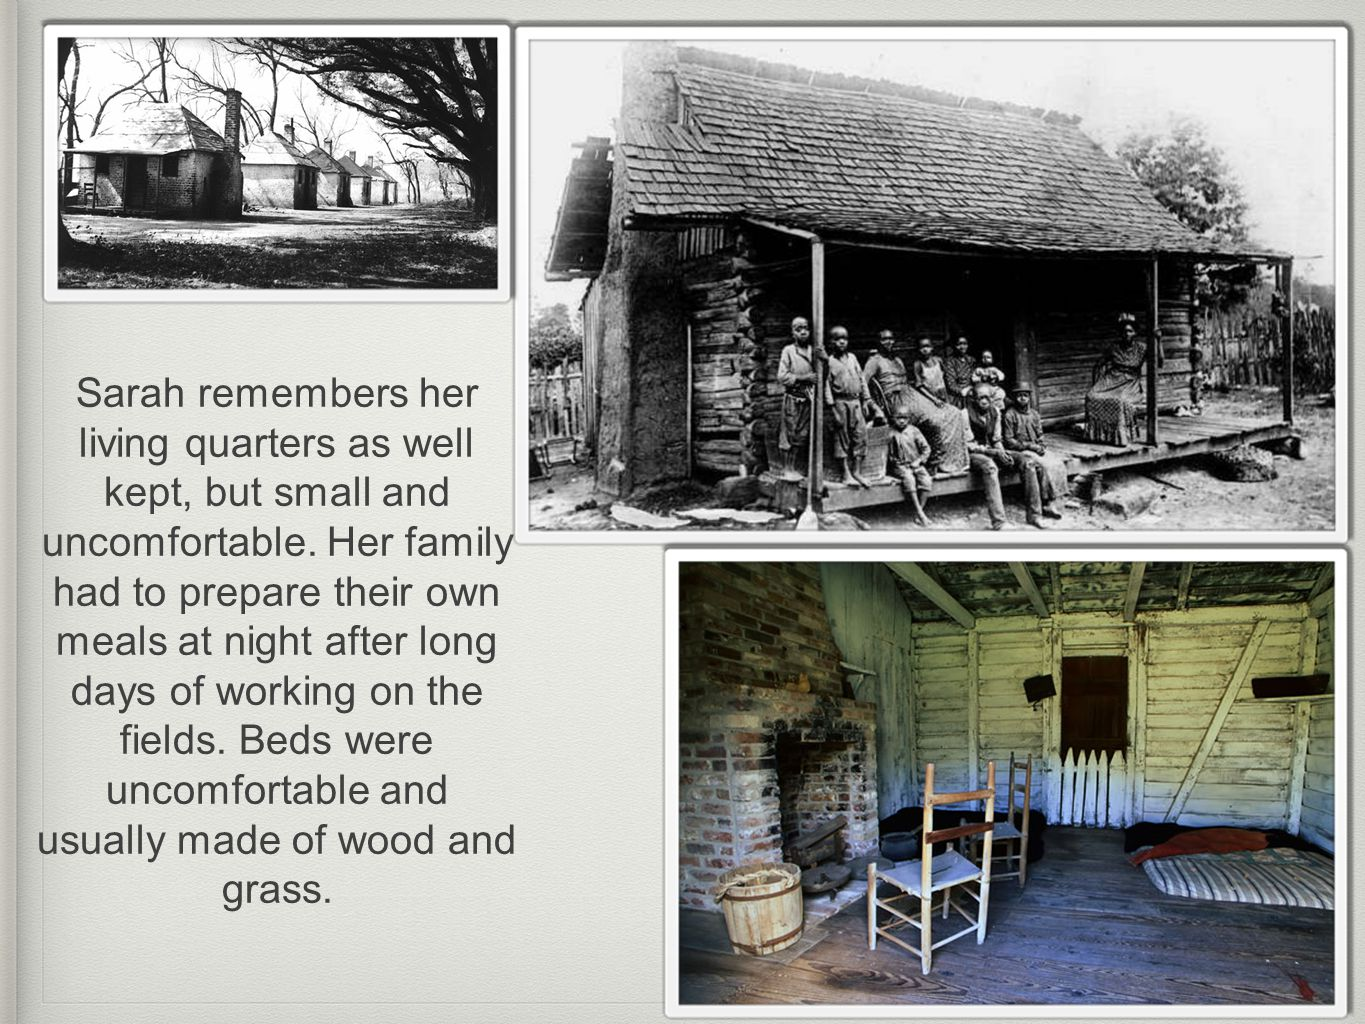 Sarah recalls her sleeping arrangements as wooden boxes filled with straw.